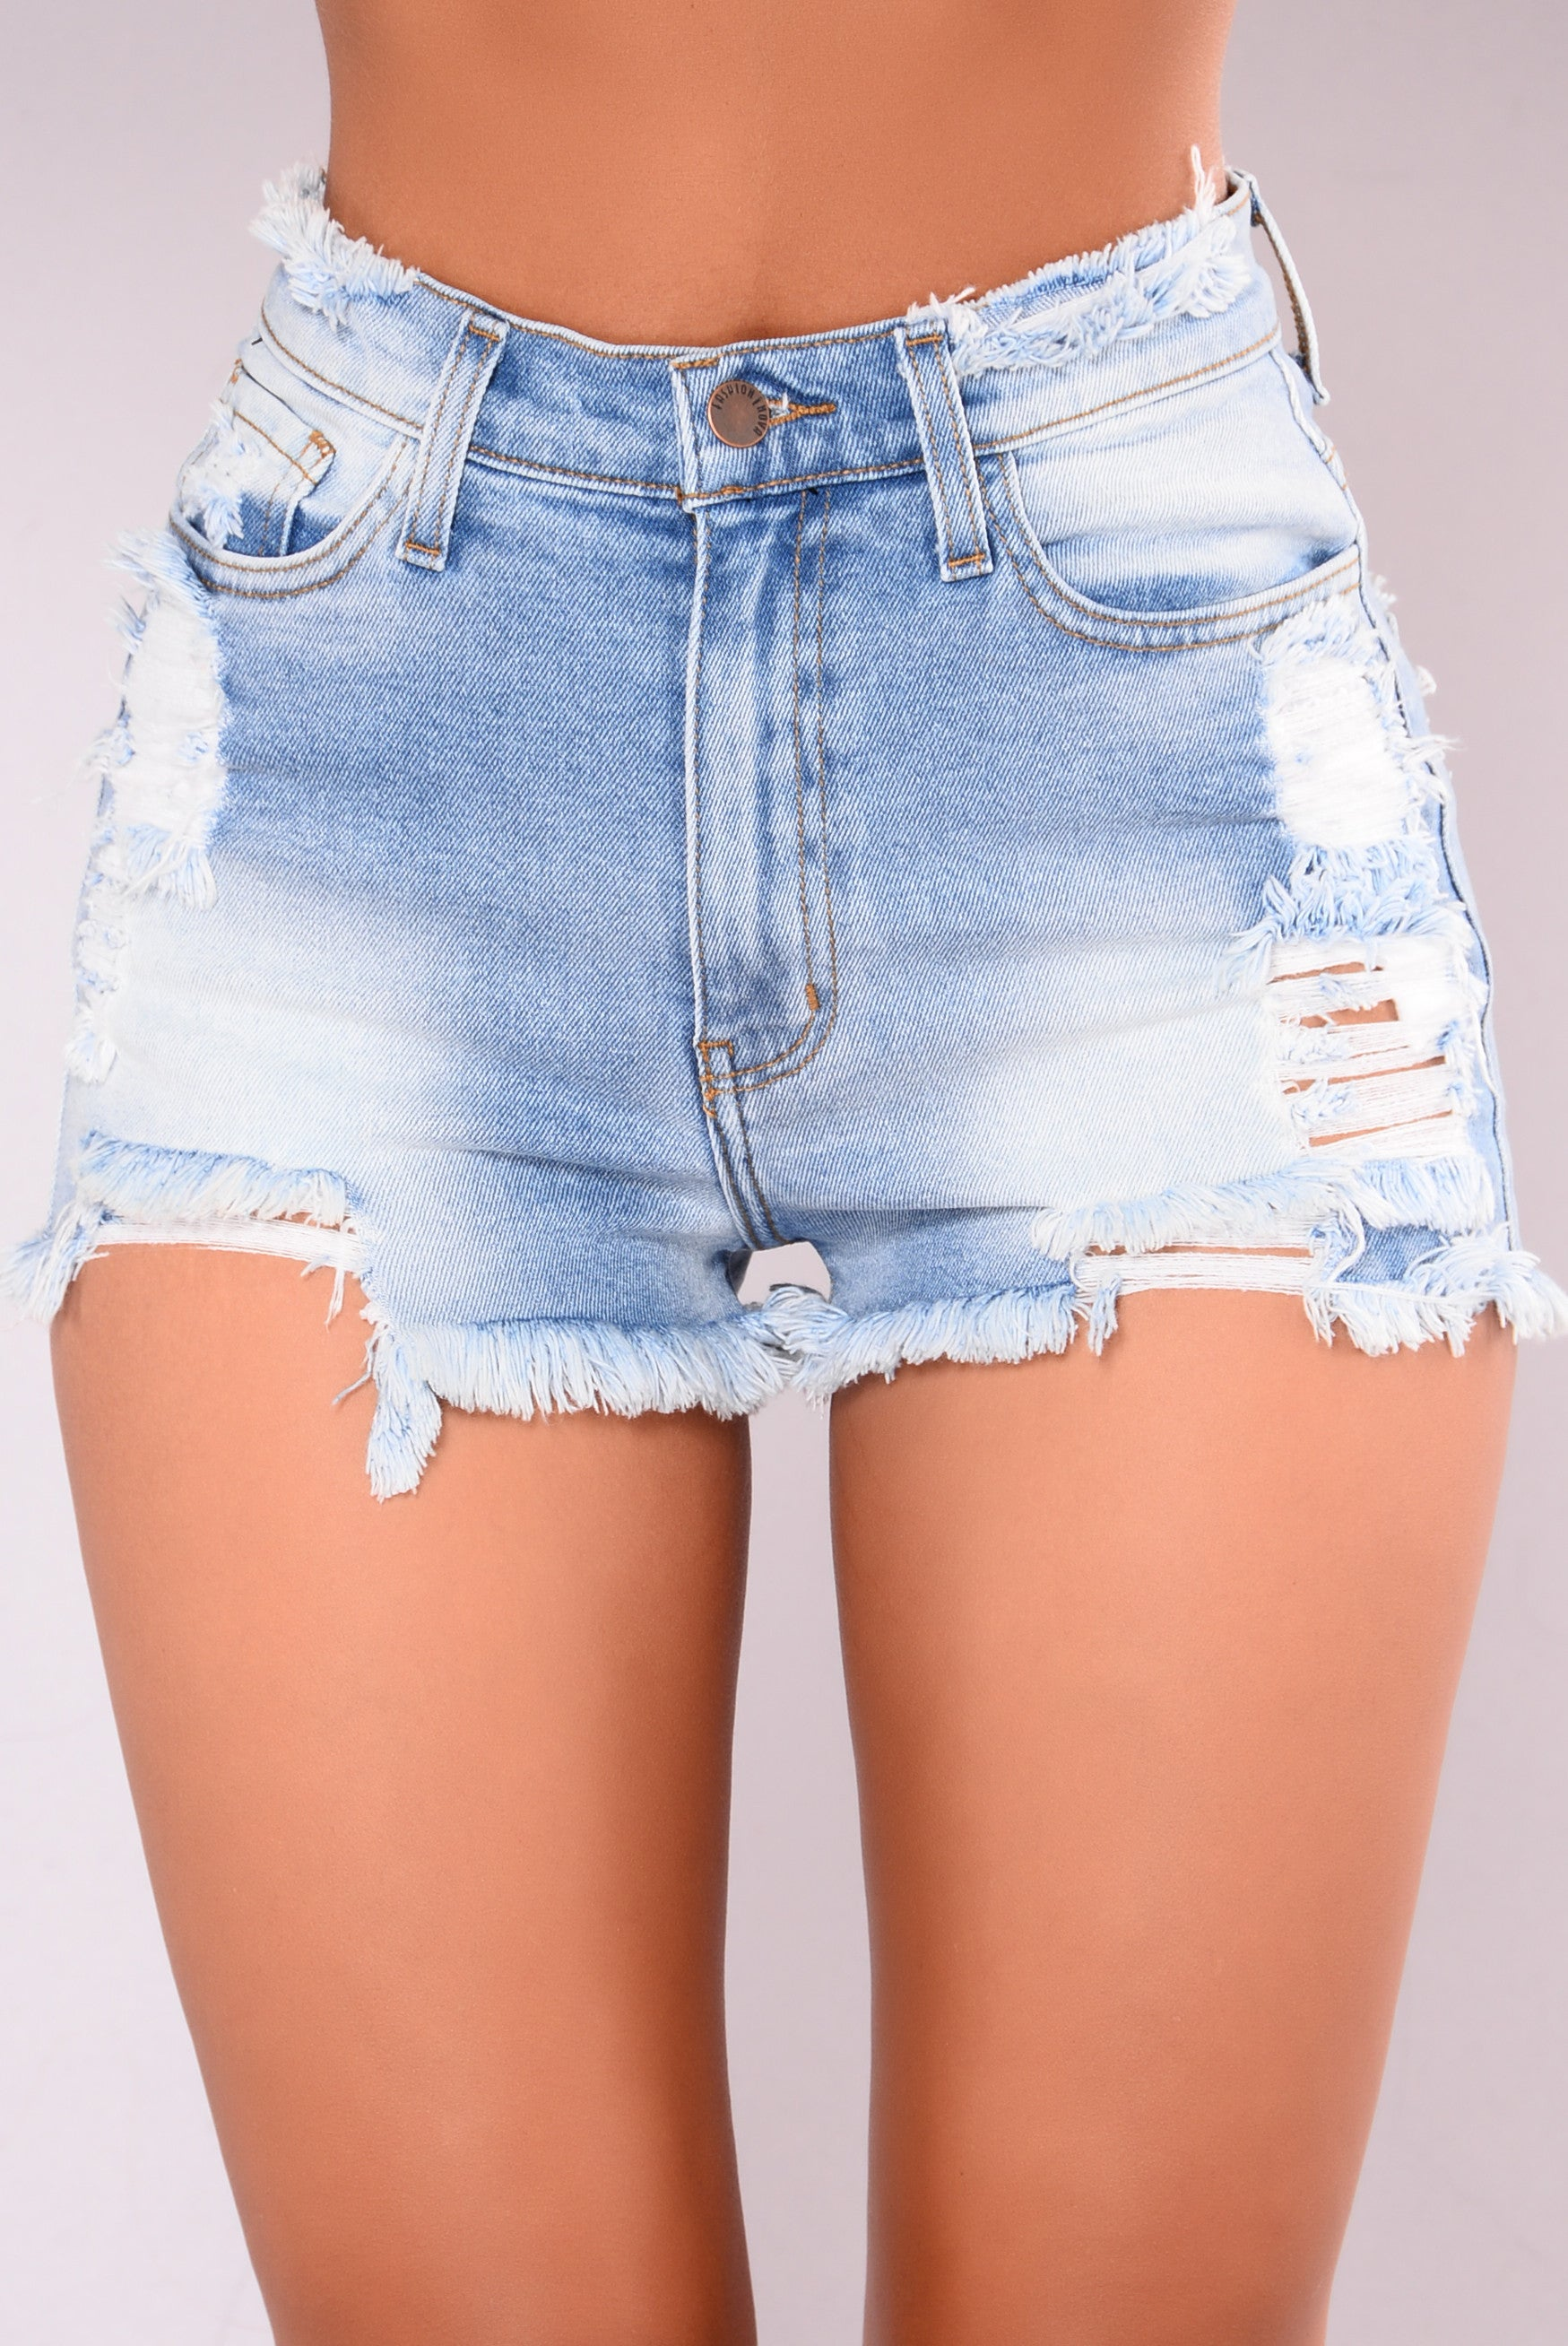 blue jean shorts for girls